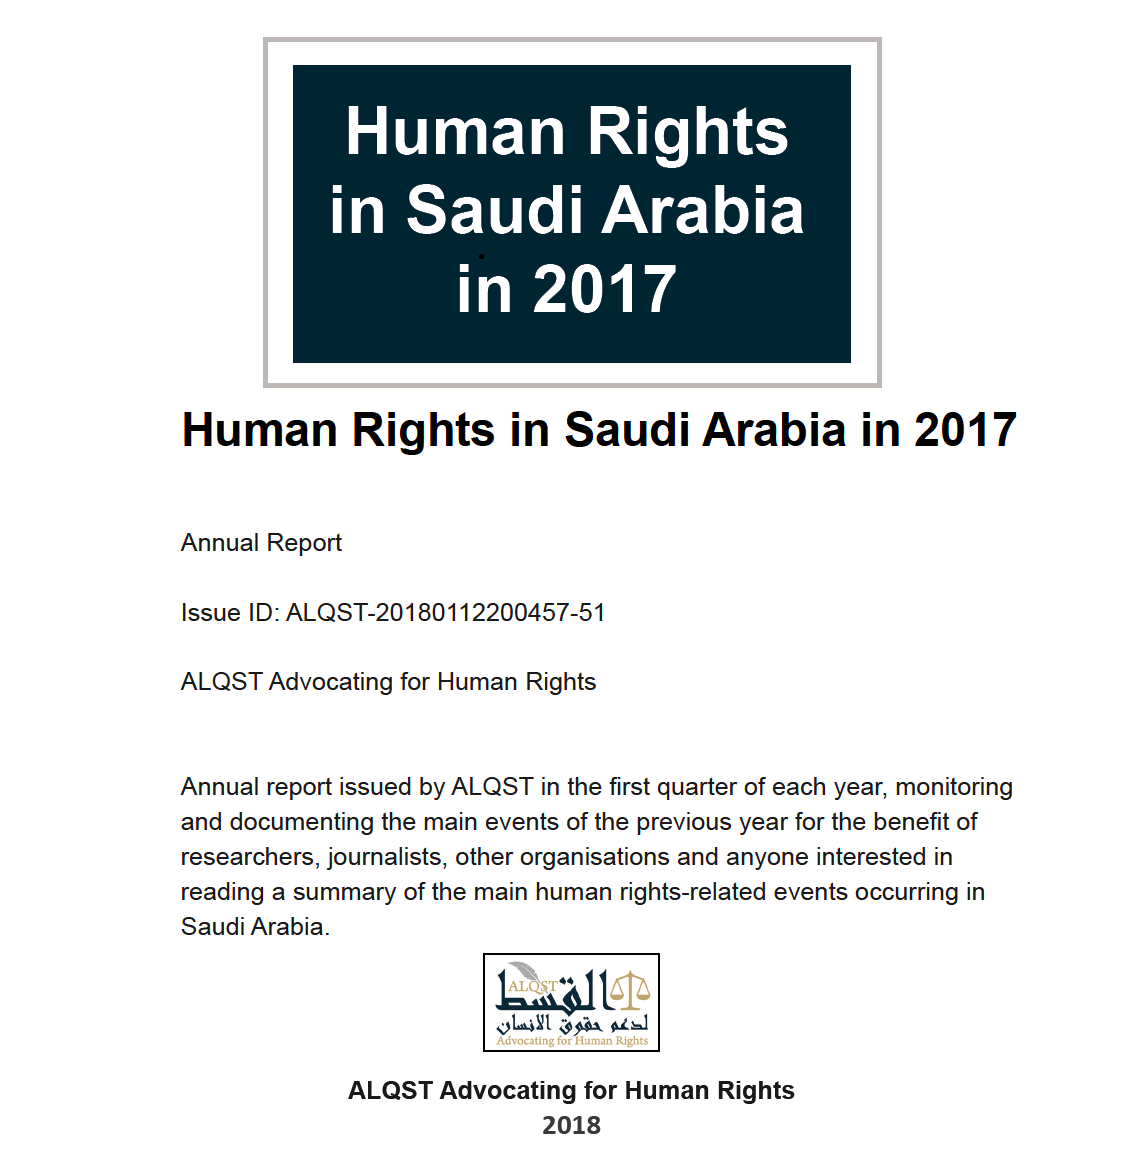 Human Rights Situation in Saudi Arabia 2017 - القسط